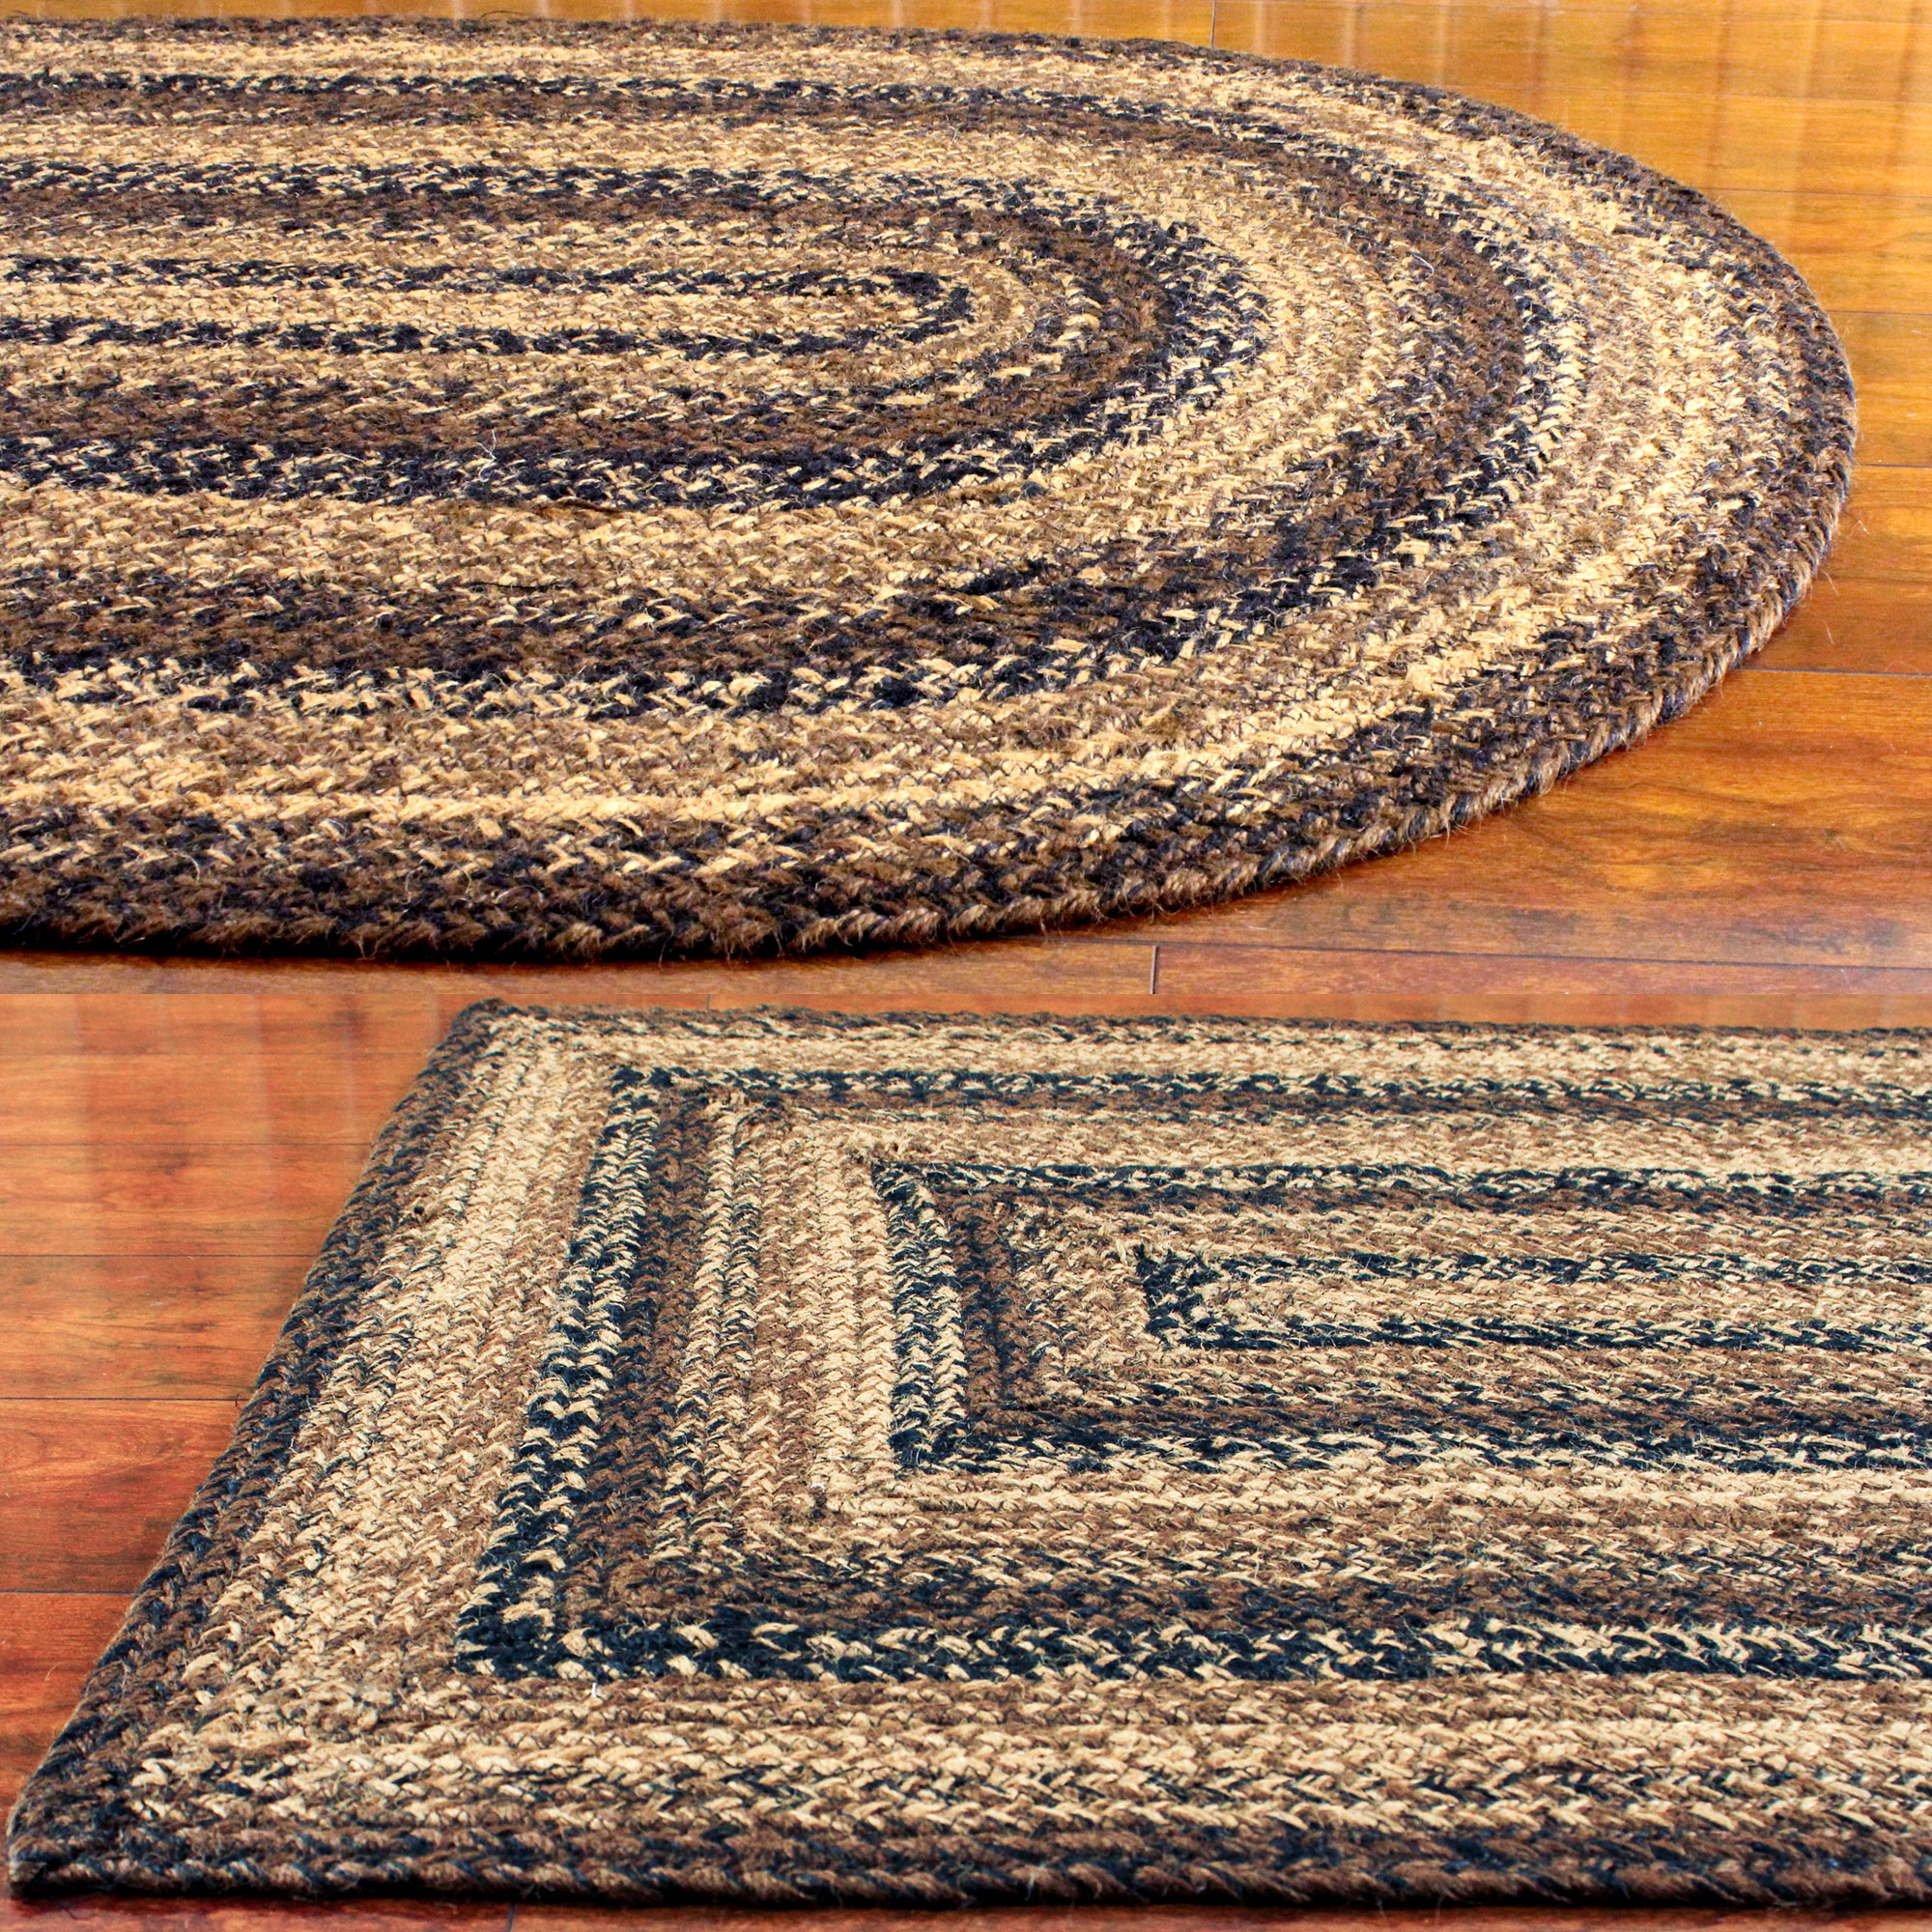 Jute Braided Rug Black Brown And Tan Primitive Country Cuccino